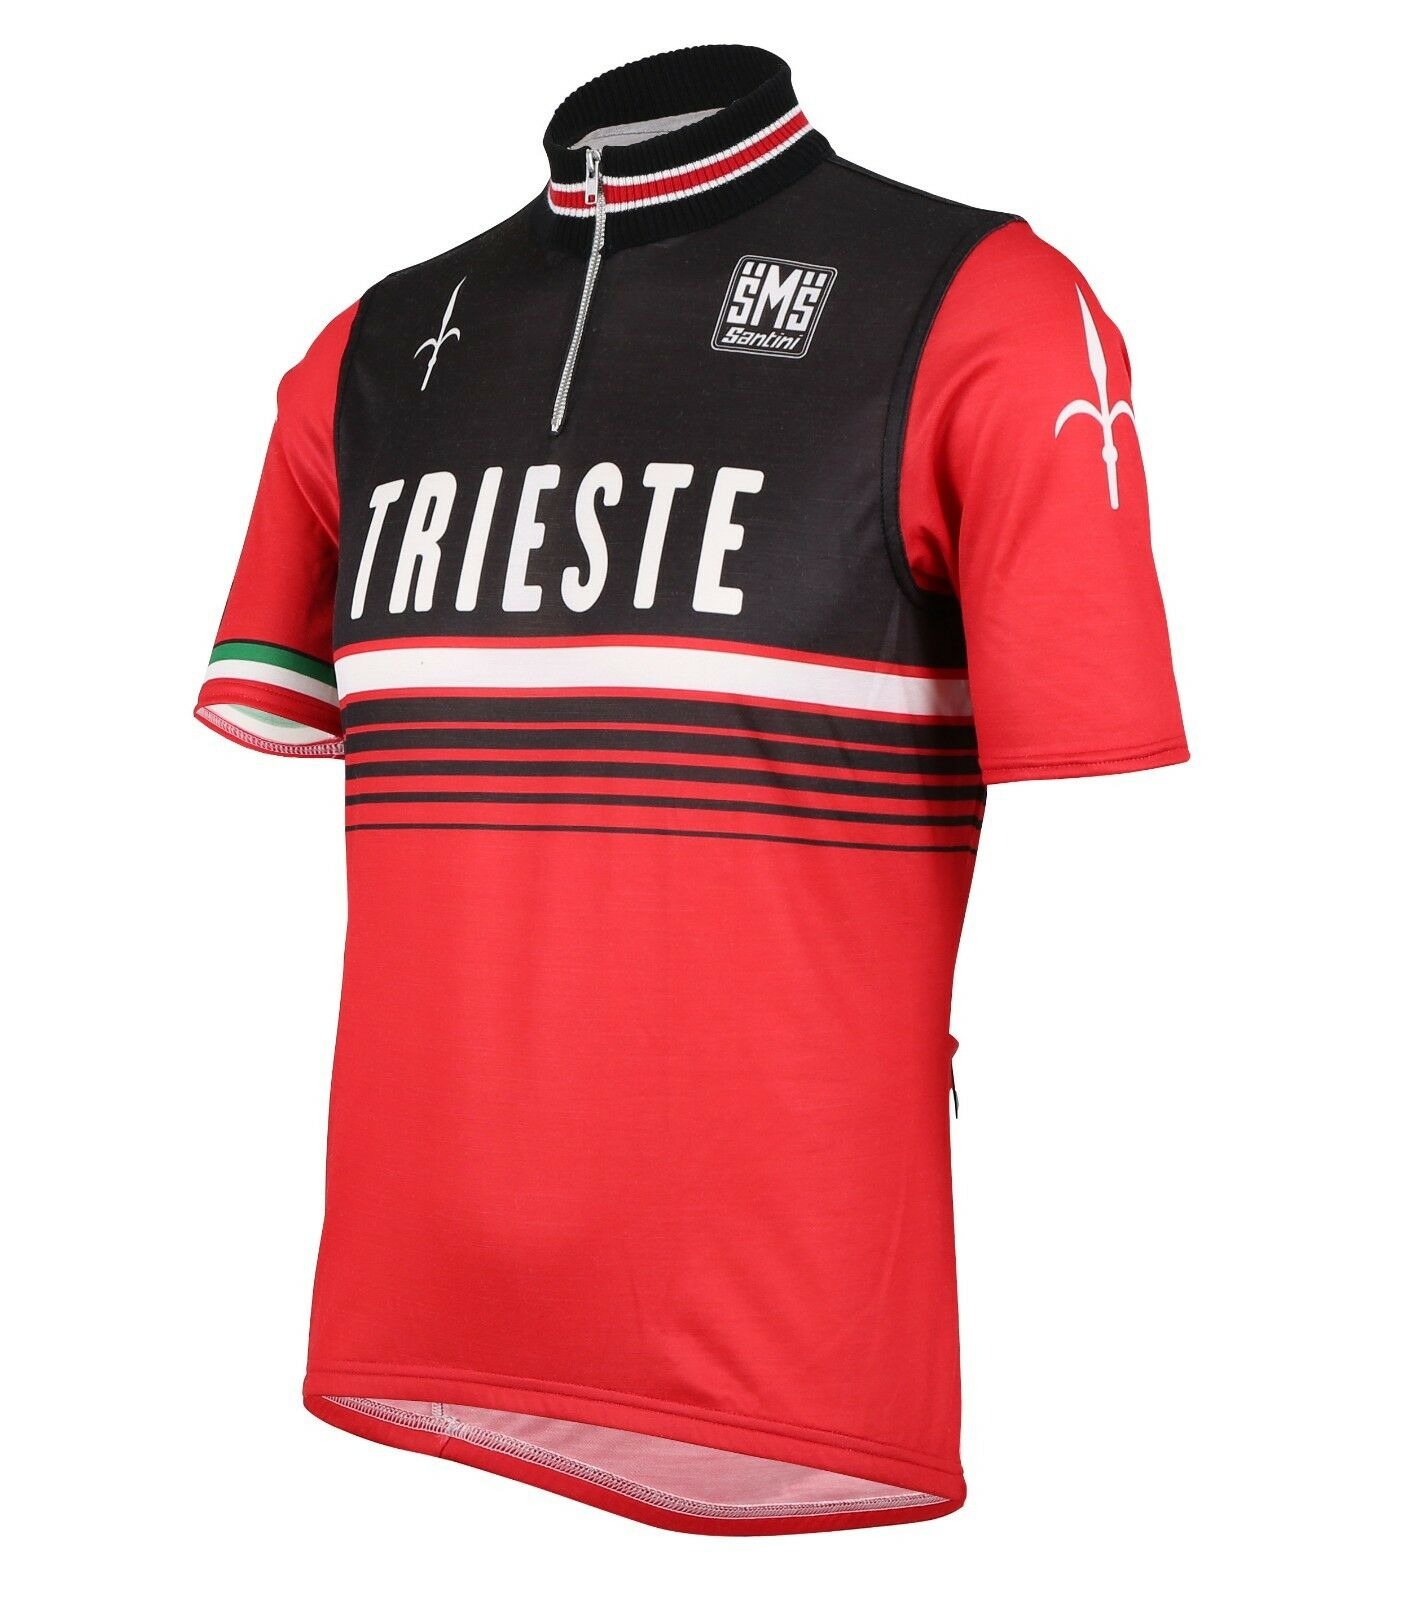 2014 Giro d'Italia Trieste Cycling Jersey in Tech  Wool -Made in  by Santini  fast delivery and free shipping on all orders